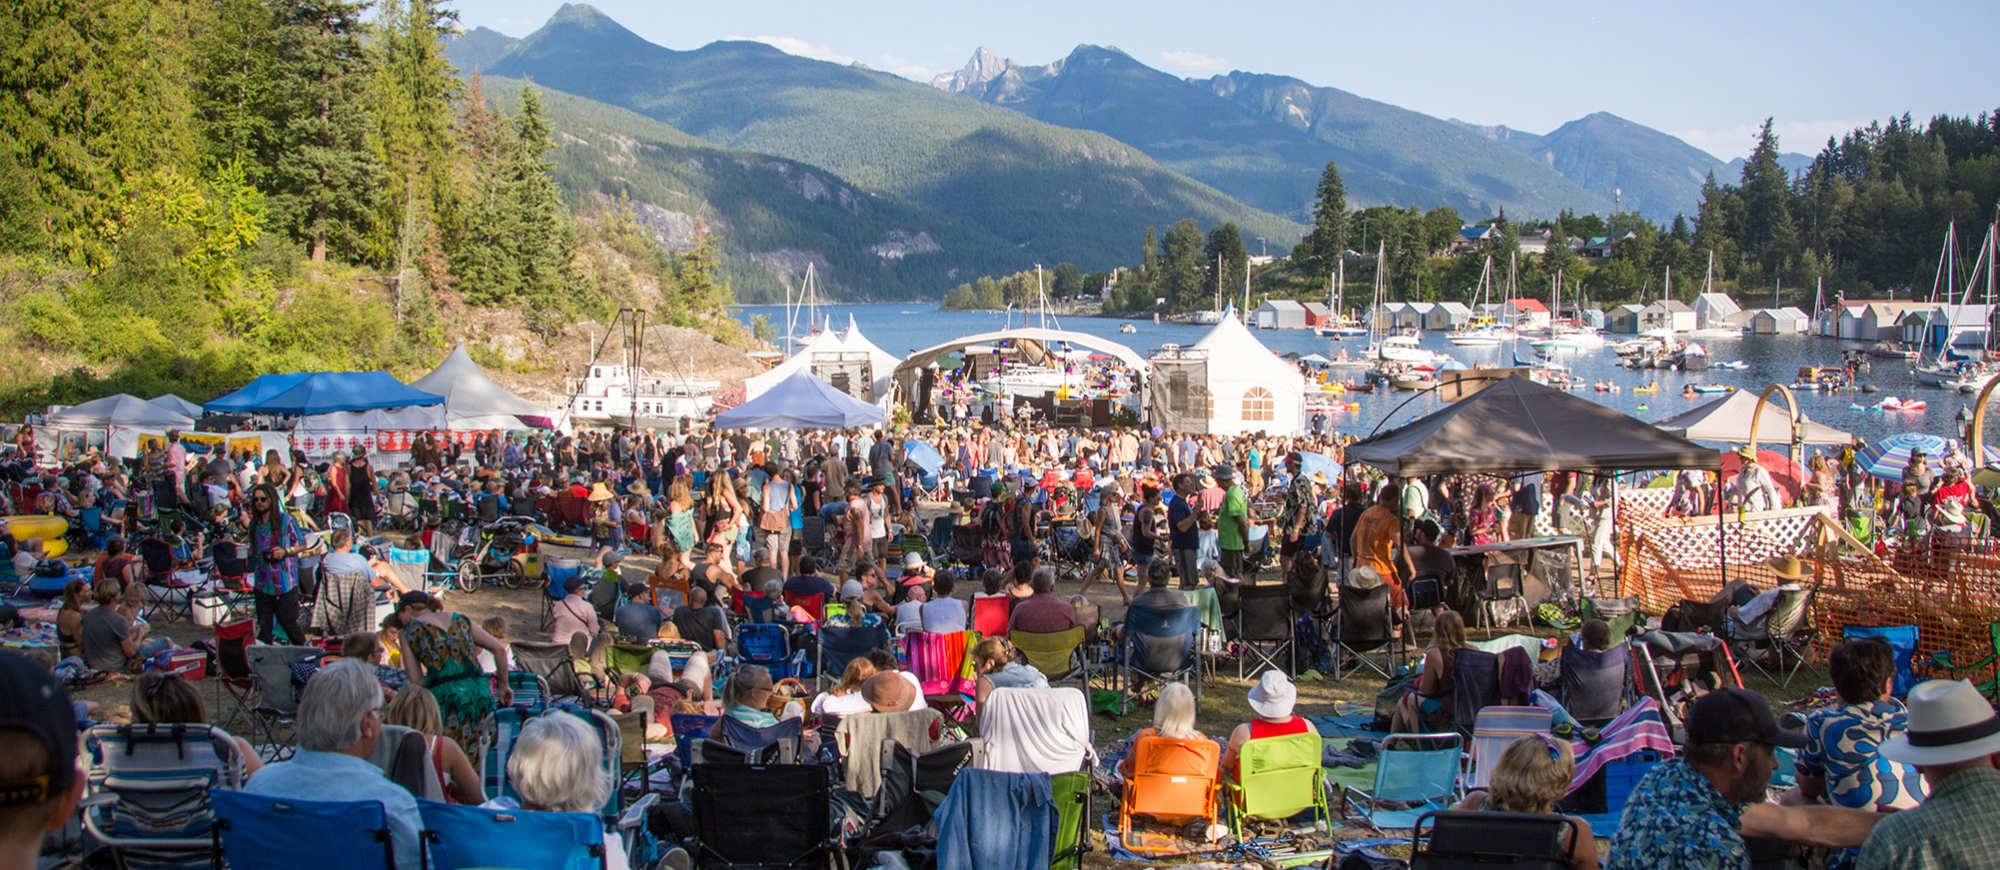 People sitting on the grass looking towards the floating stage on a sunny day at kaslo jazz festival